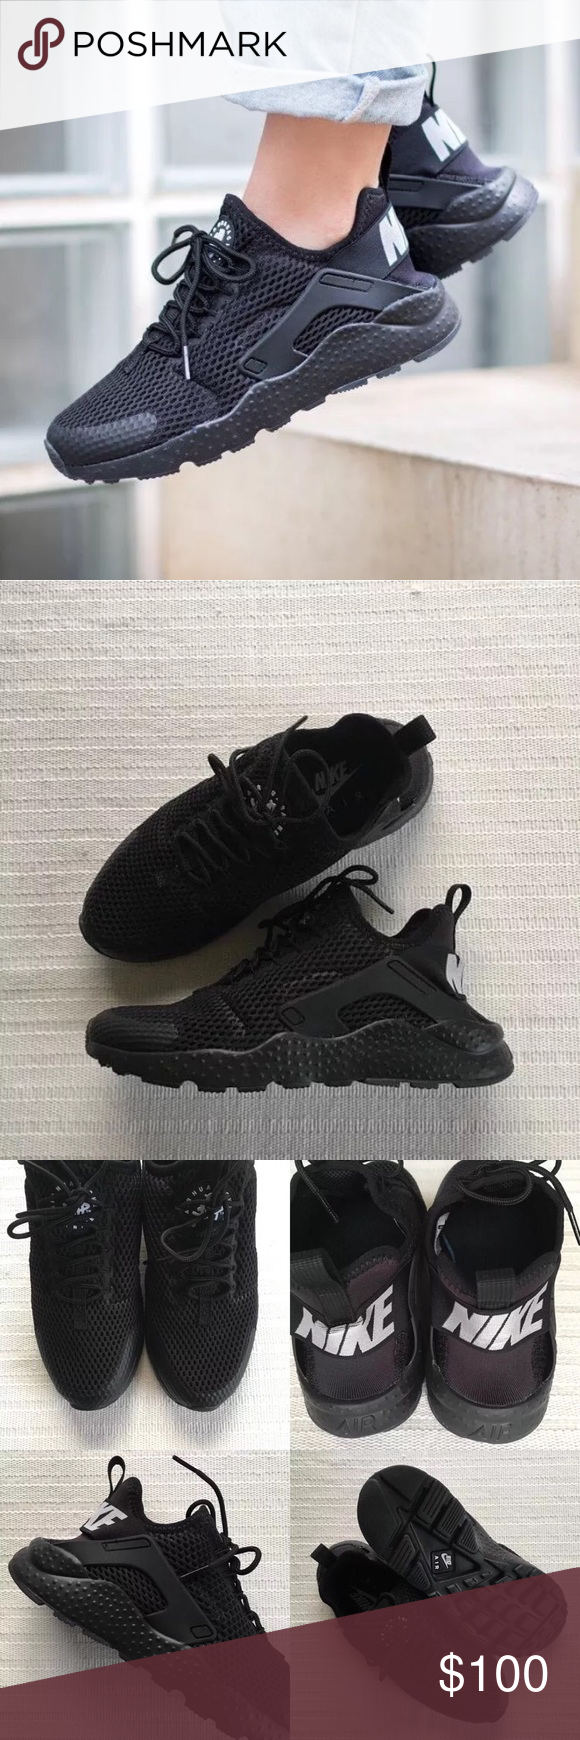 cheap for discount 0bee0 3a52b Women s Nike Air Huarache Run Ultra Breathe Black Women s Nike Air Huarache  Run Ultra Breathe Black Style Color  833292-001   Women s size 8   NEW in  box ...